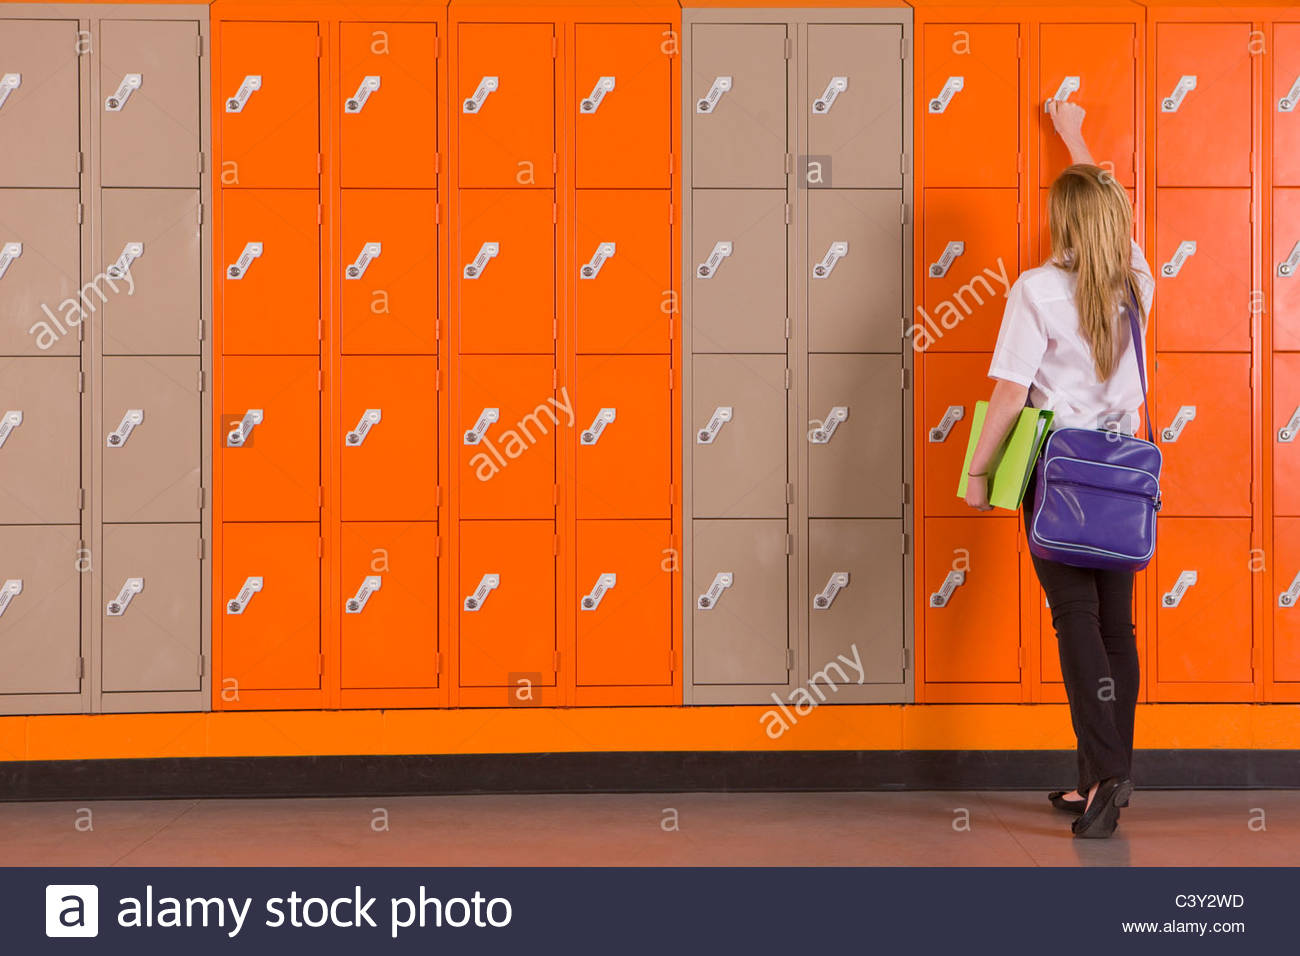 Student unlocking school locker - Stock Image